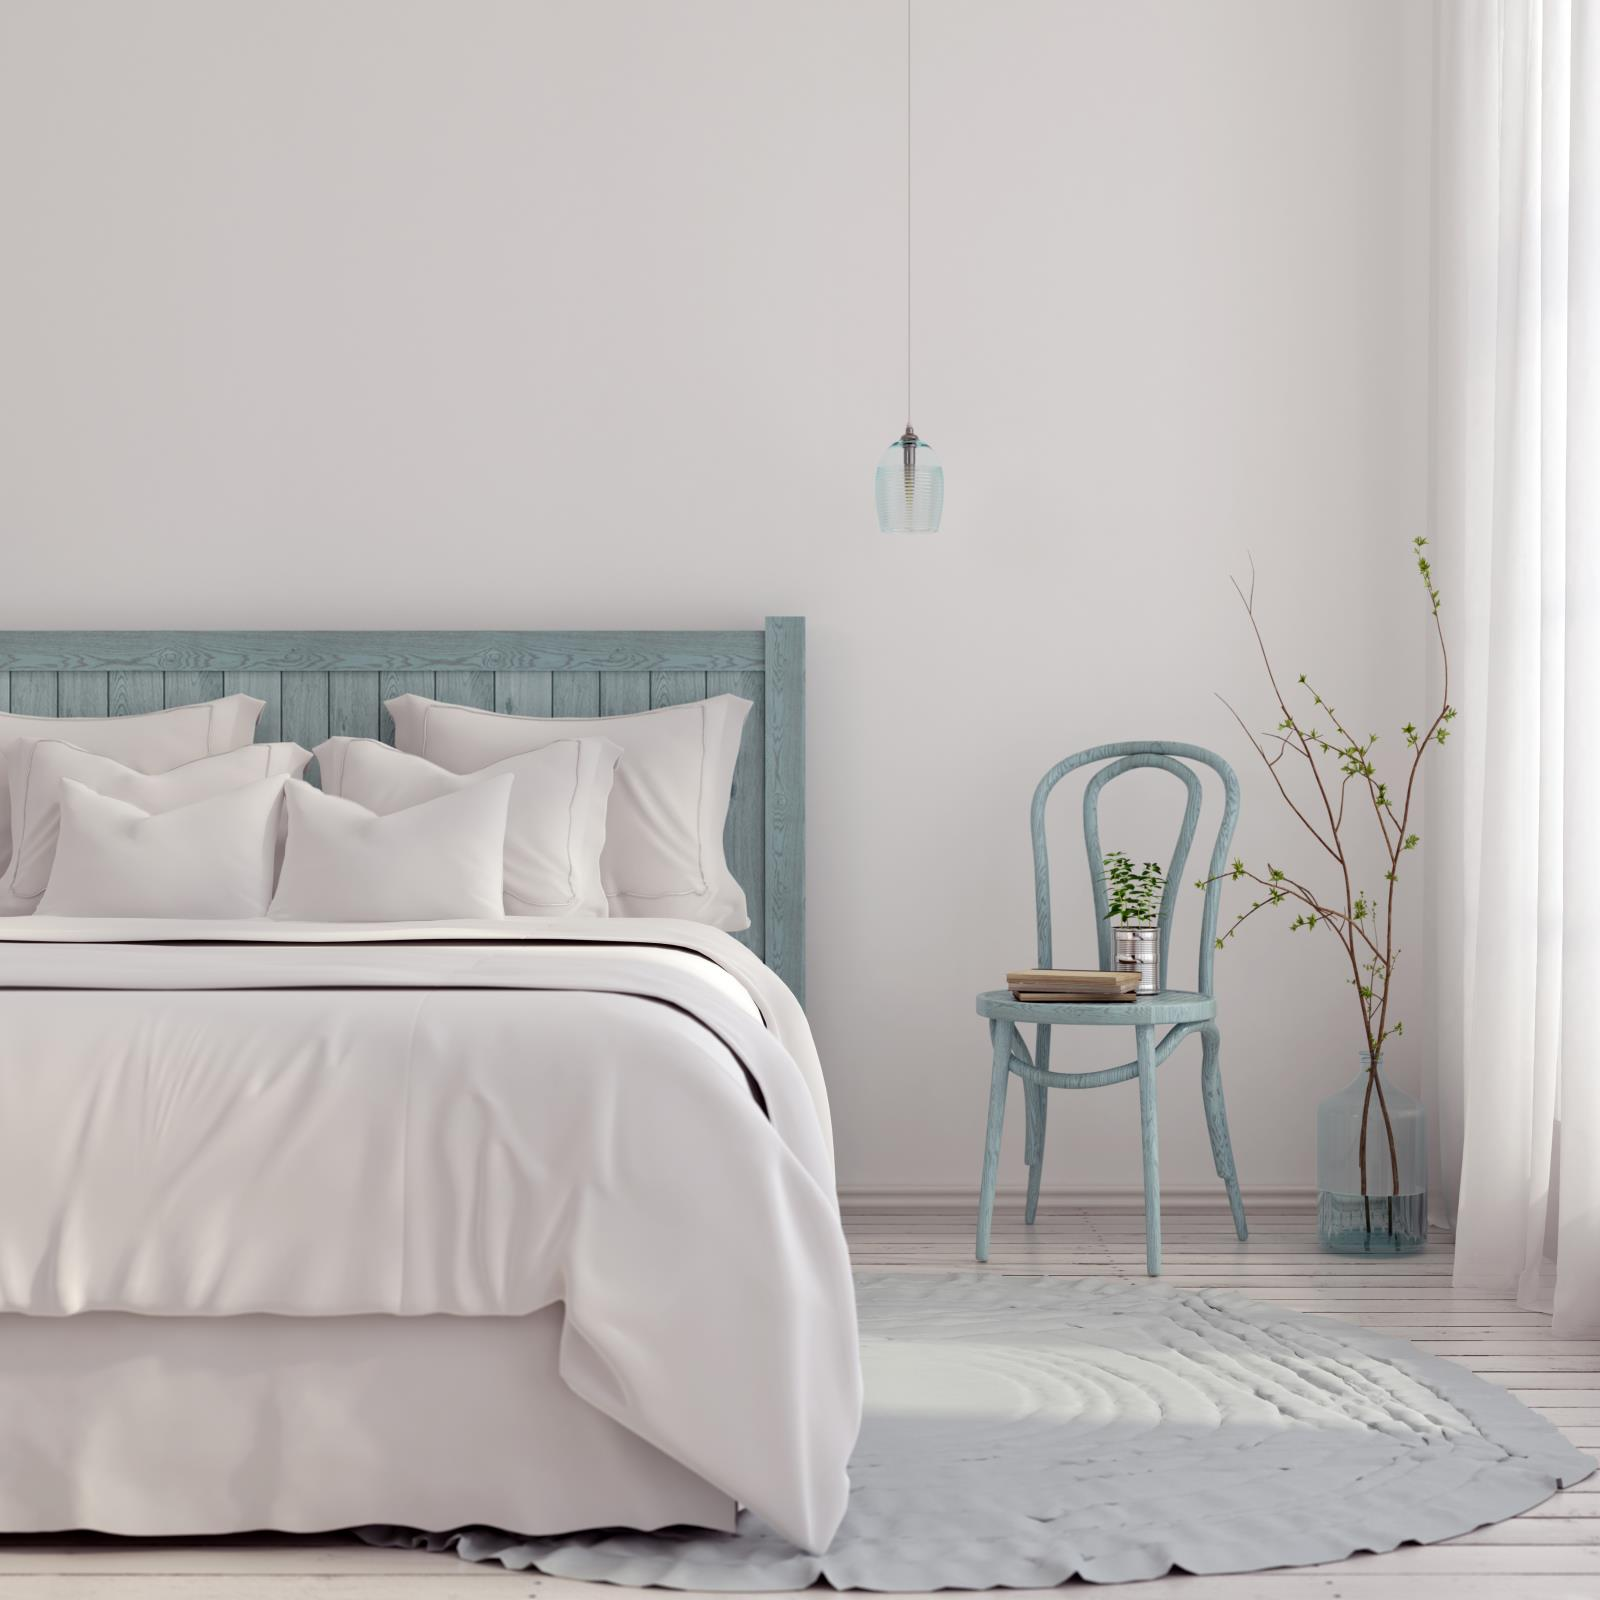 Bedroom with teal and neutral bedding